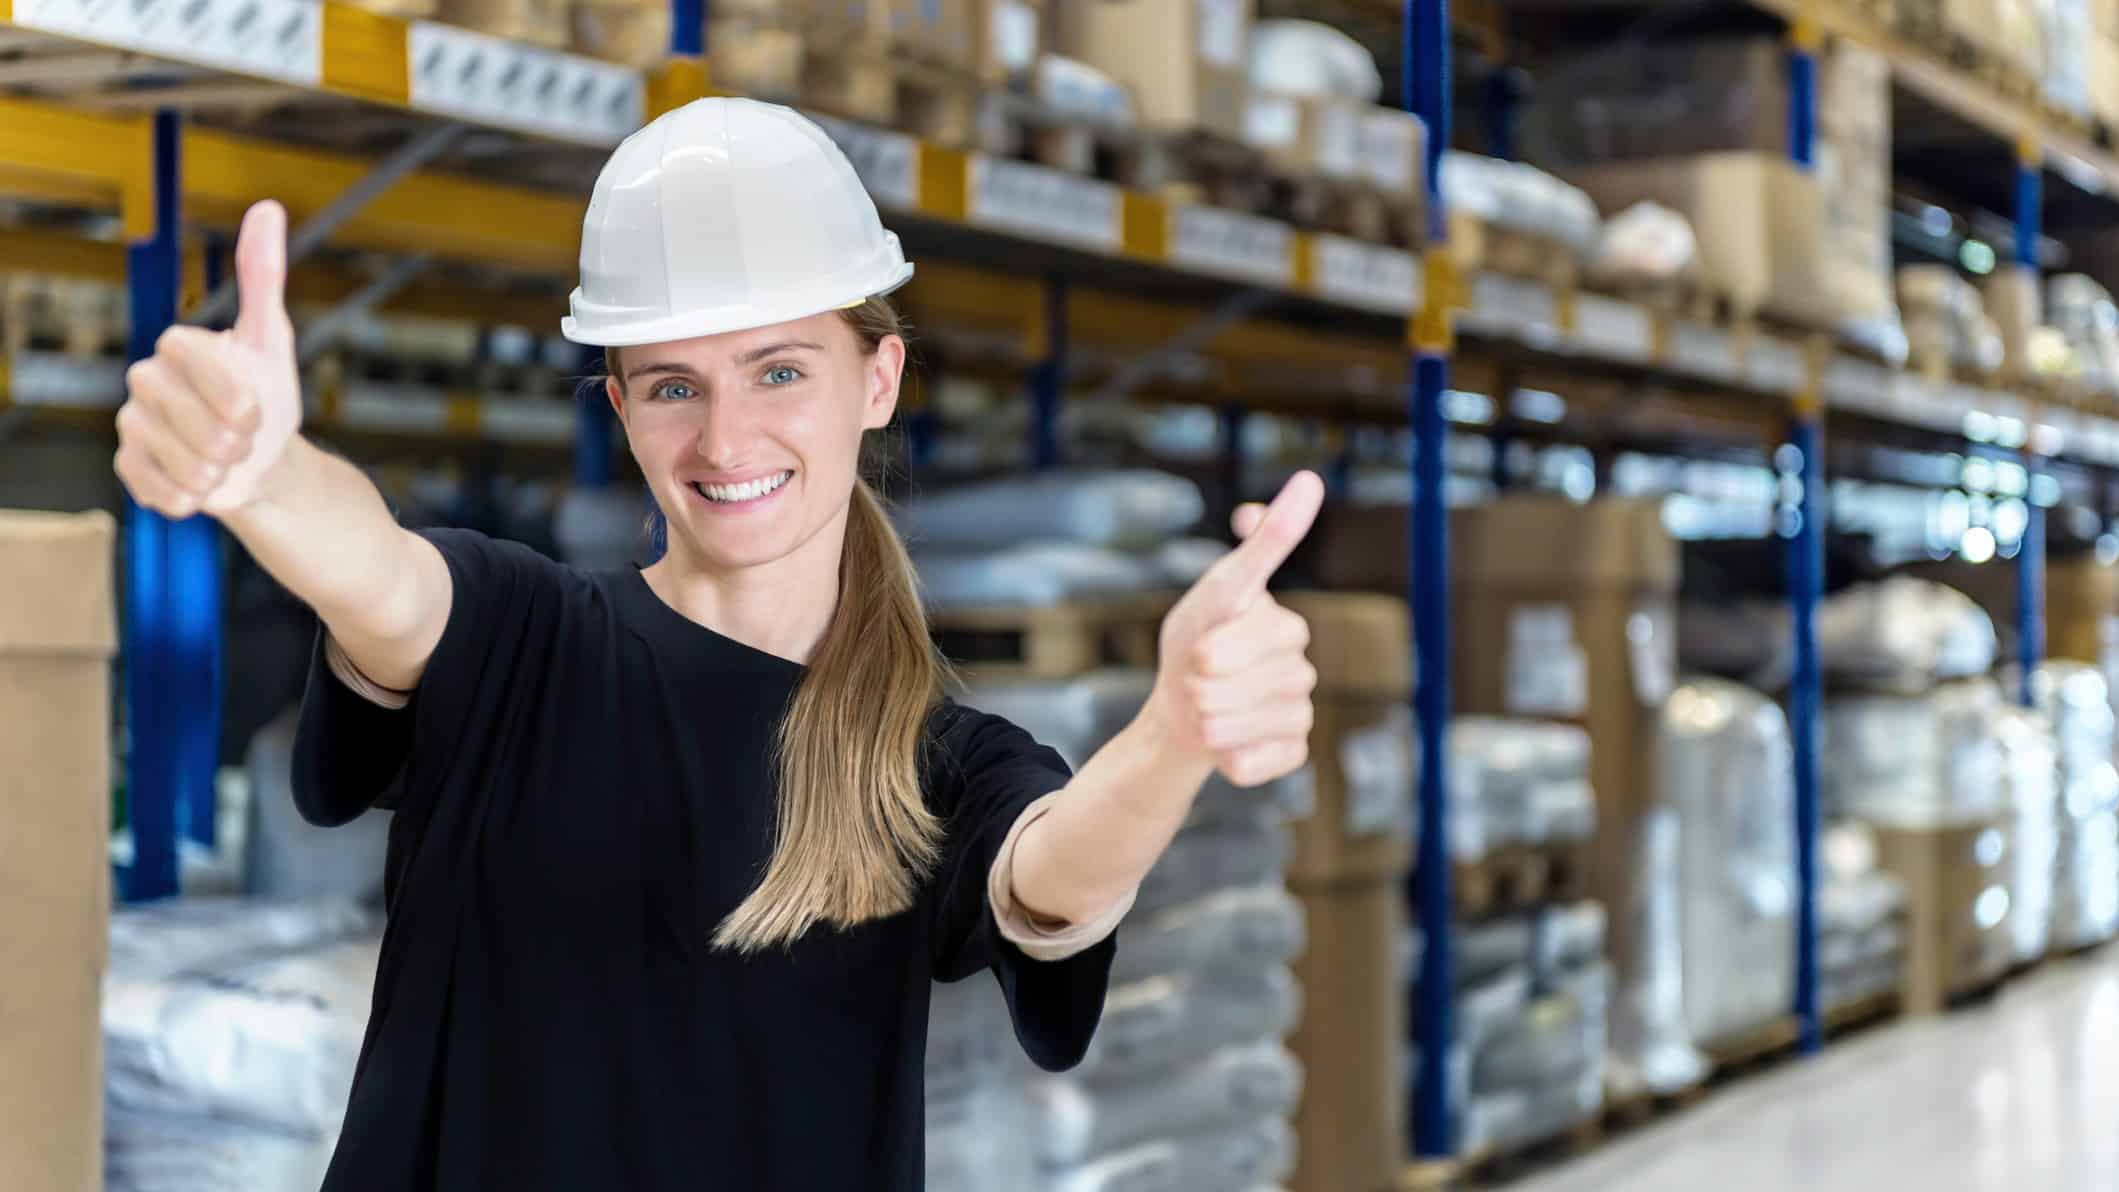 A happy woman in a hard hat gives two thumbs up, standing in a packing warehouse.